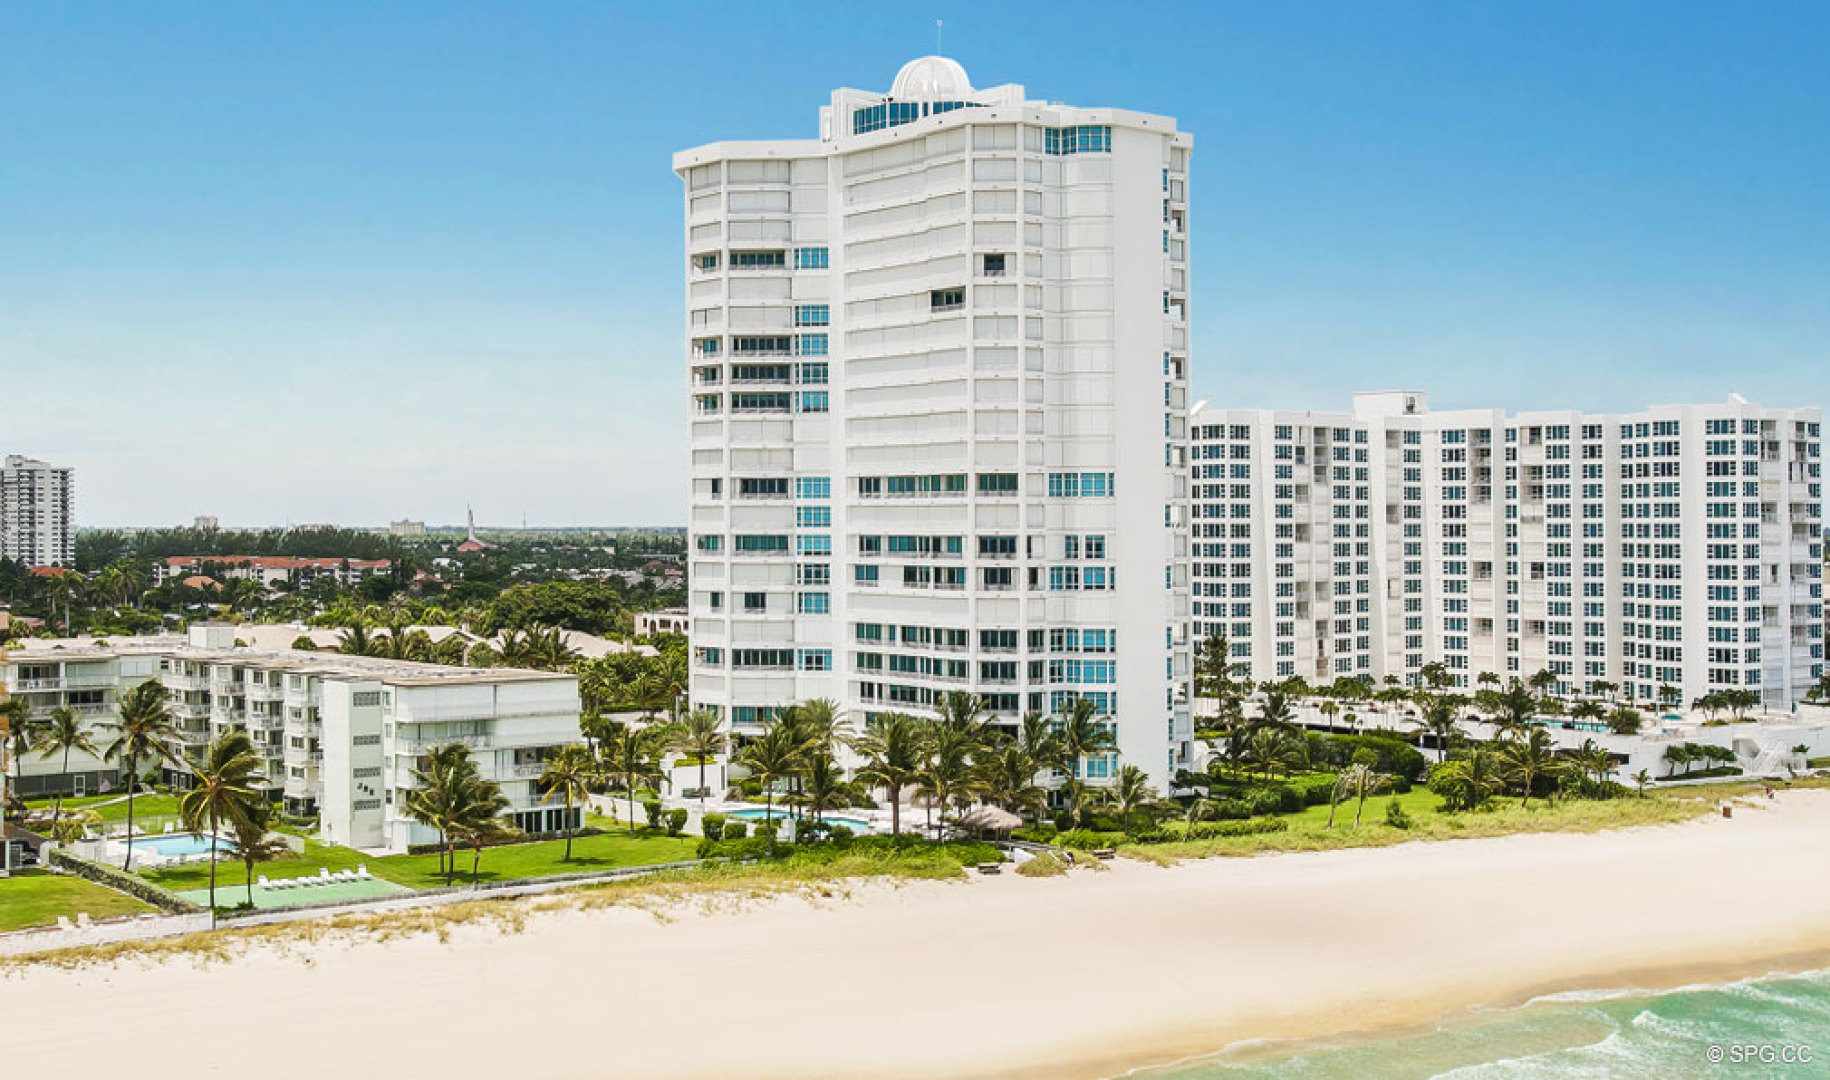 Beach View Of Cristelle Luxury Oceanfront Condos In Lauderdale By The Sea Florida 33062